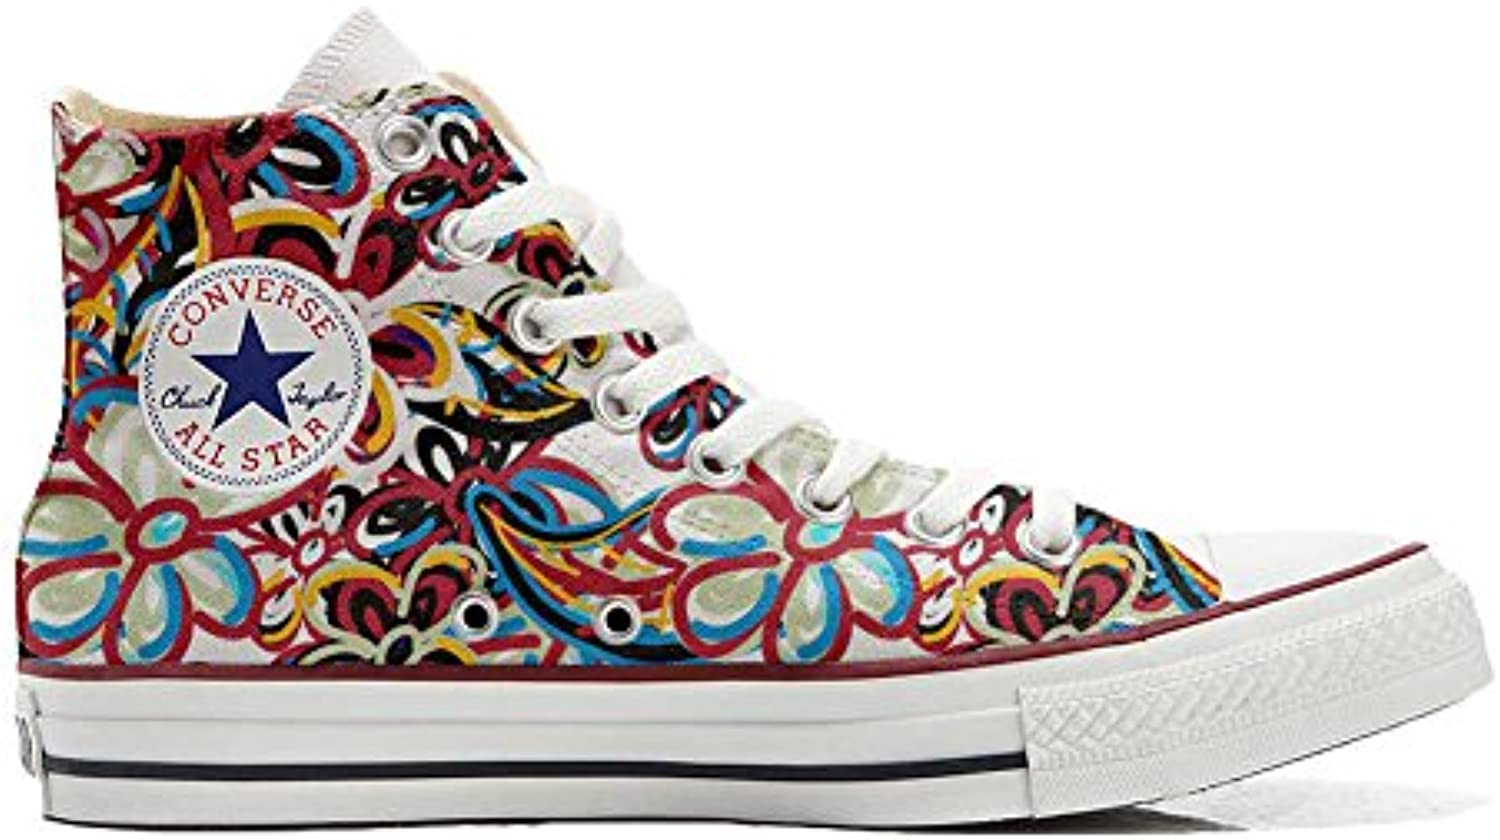 mys Converse All Star Personalisierte Schuhe   Handmade Shoes   Floreal Abstract